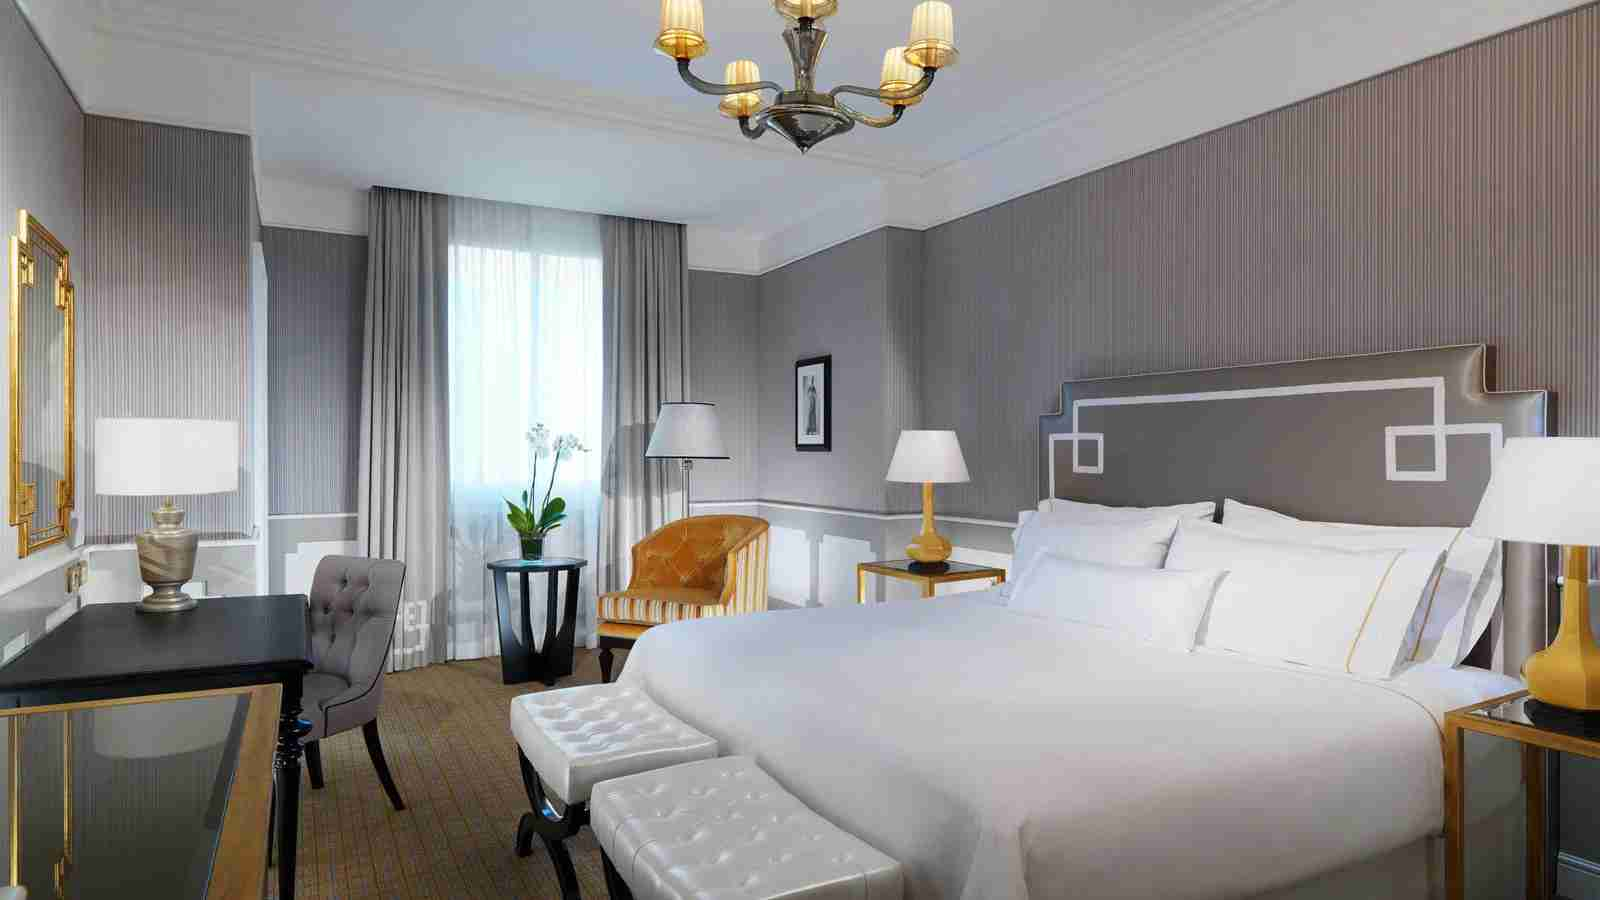 A room at the Westin Palace Milan. Image by hotel.